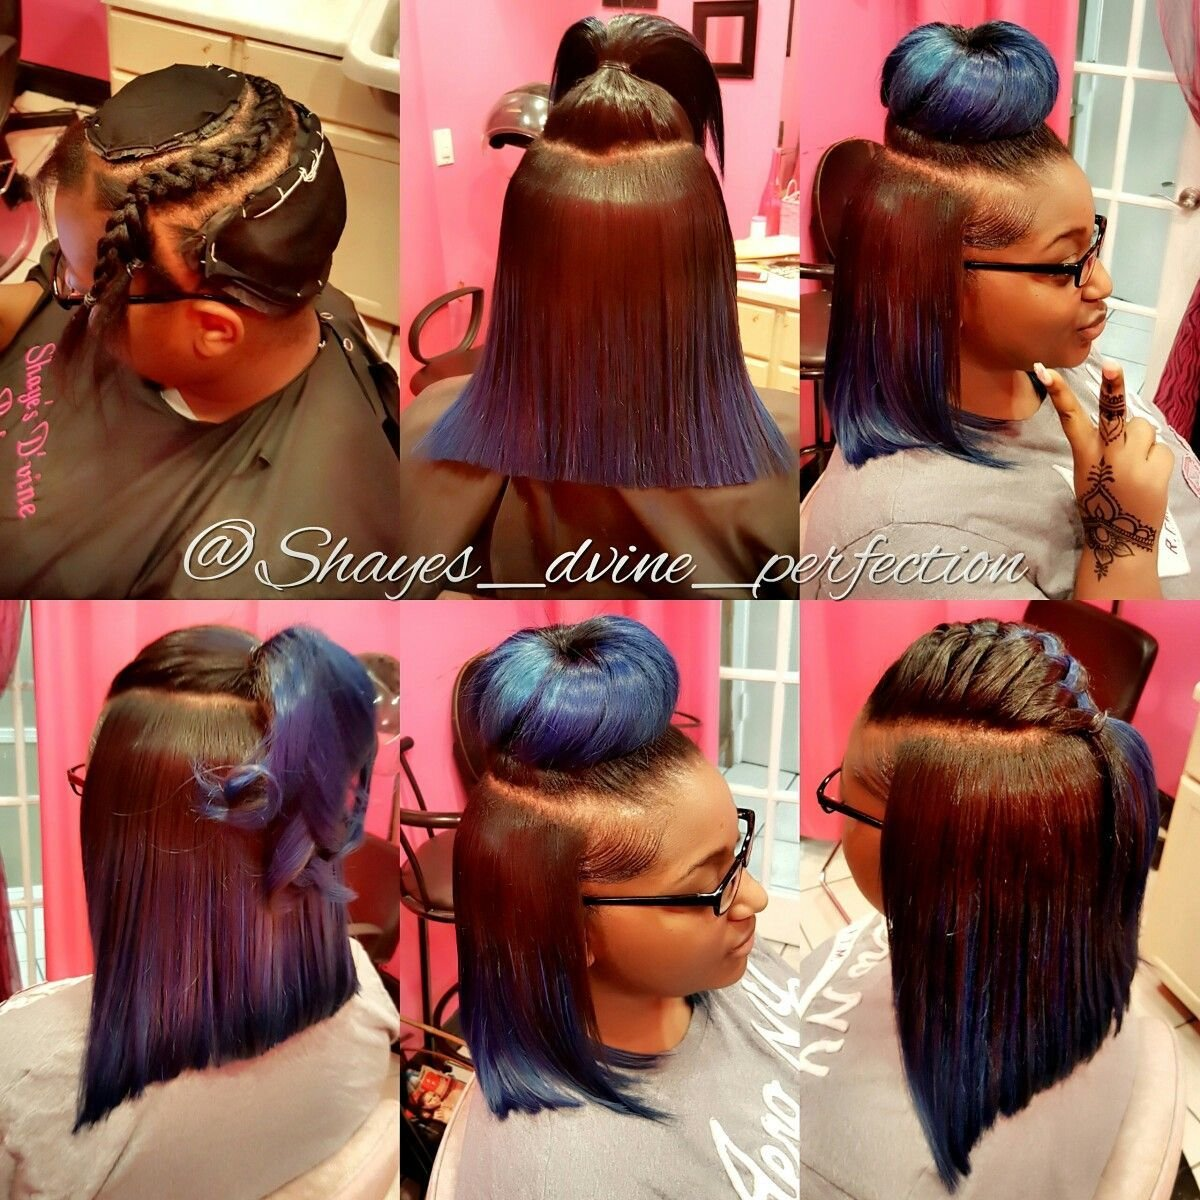 New Pronto Quick Weave Ig Shayes Dvine Perfection Fb Shayes Ideas With Pictures